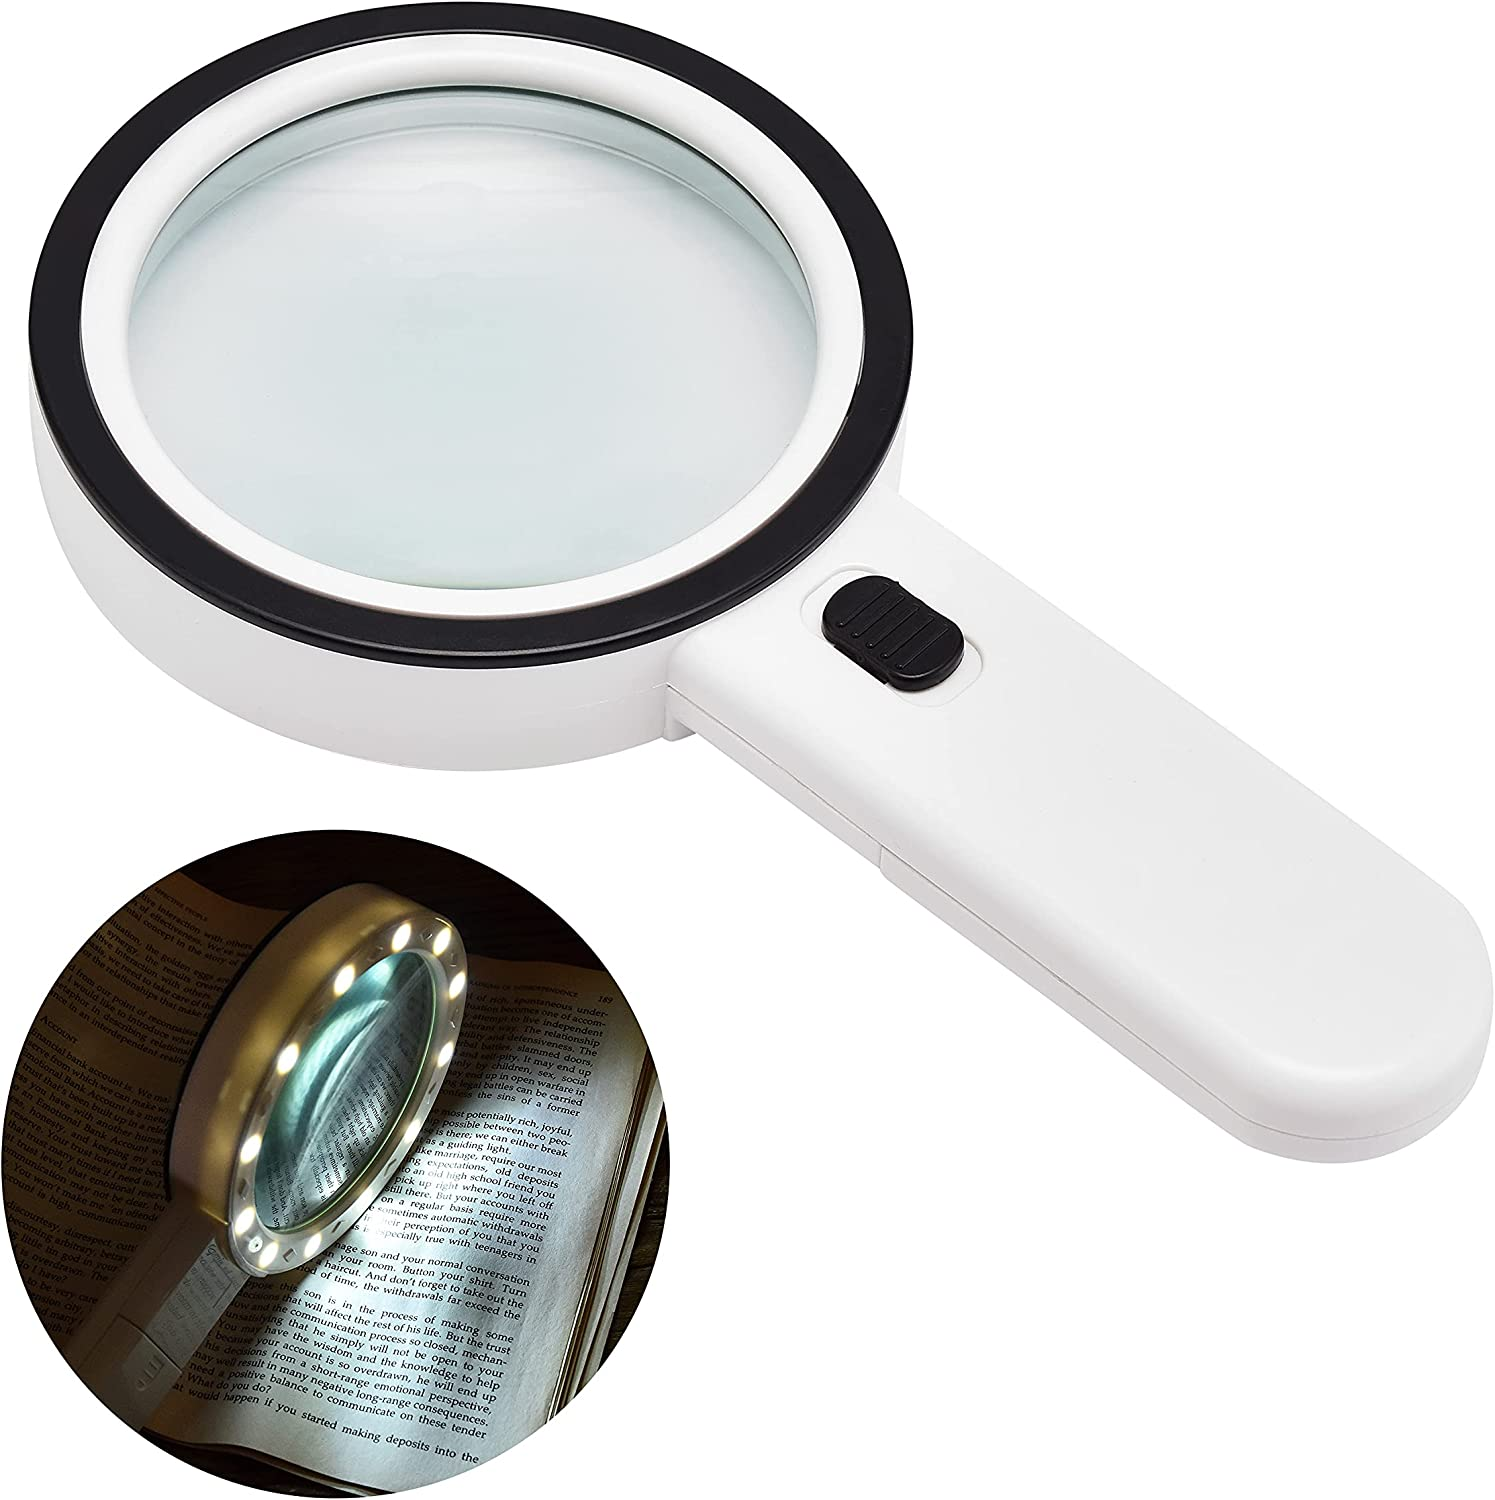 Seveight Magnifying Glass with Gl 10X 55% OFF Light Handheld Indefinitely